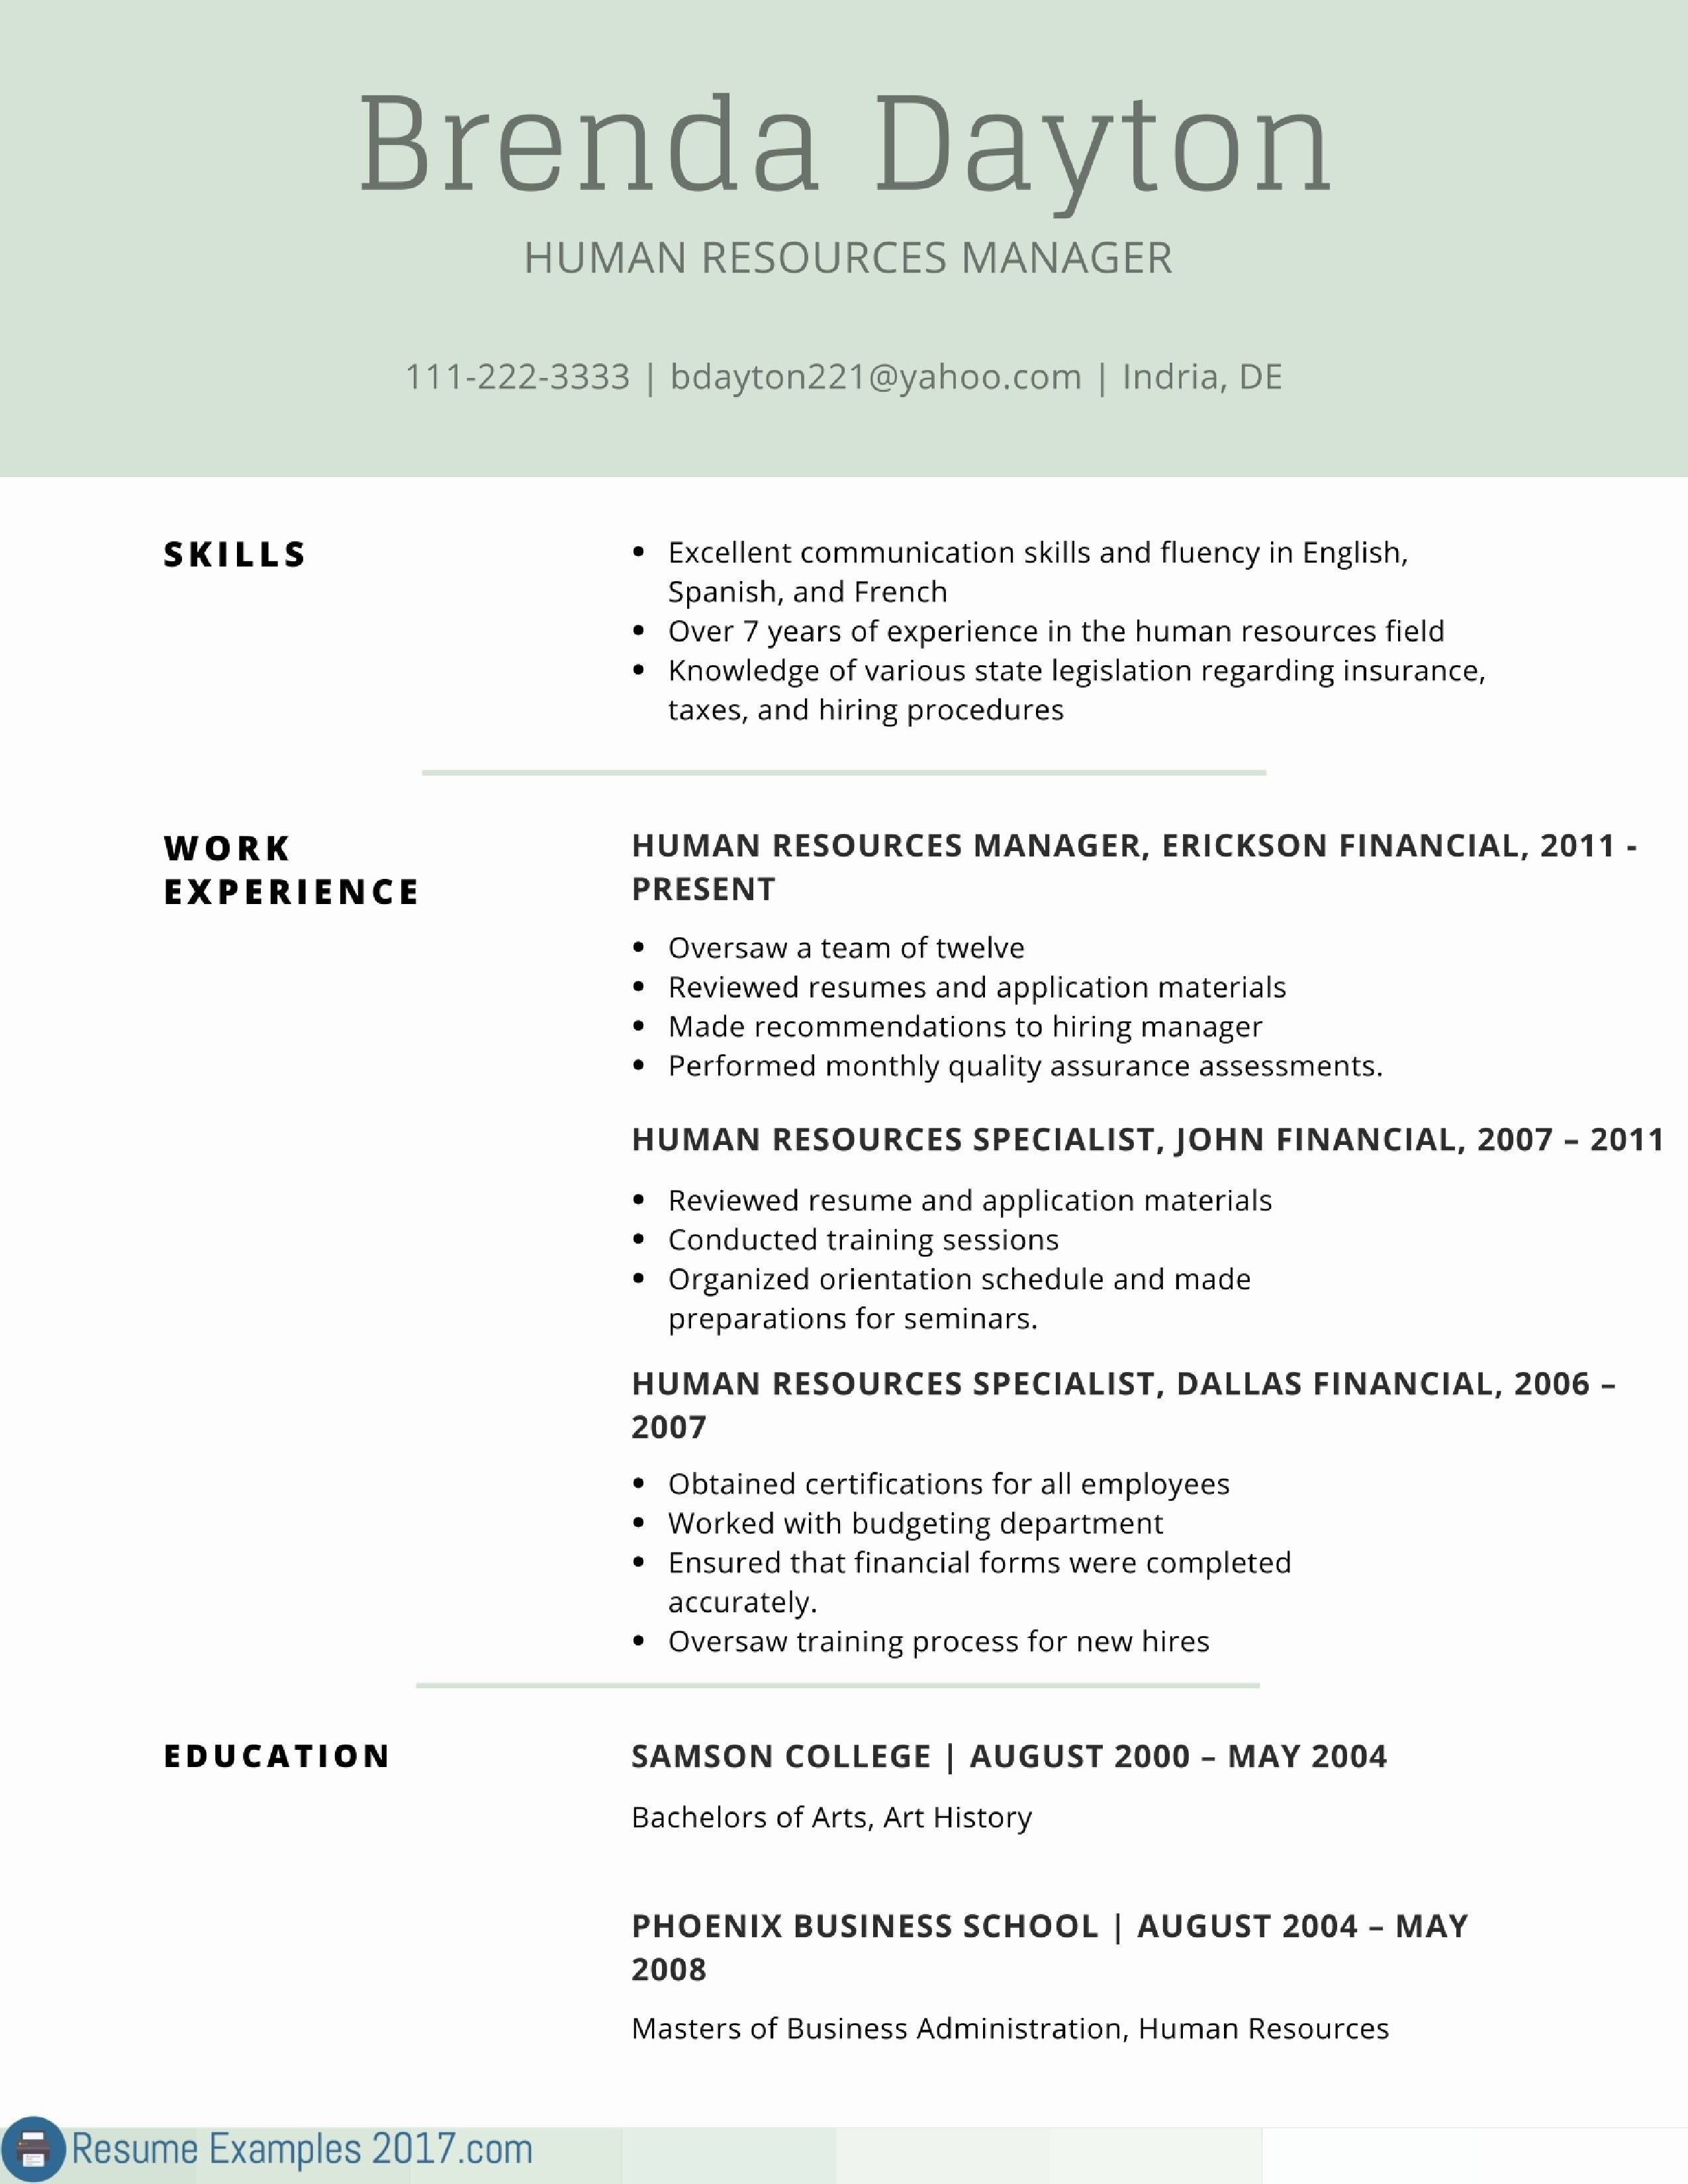 Human Resources Manager Resume - Human Resource Resume Example Paragraphrewriter